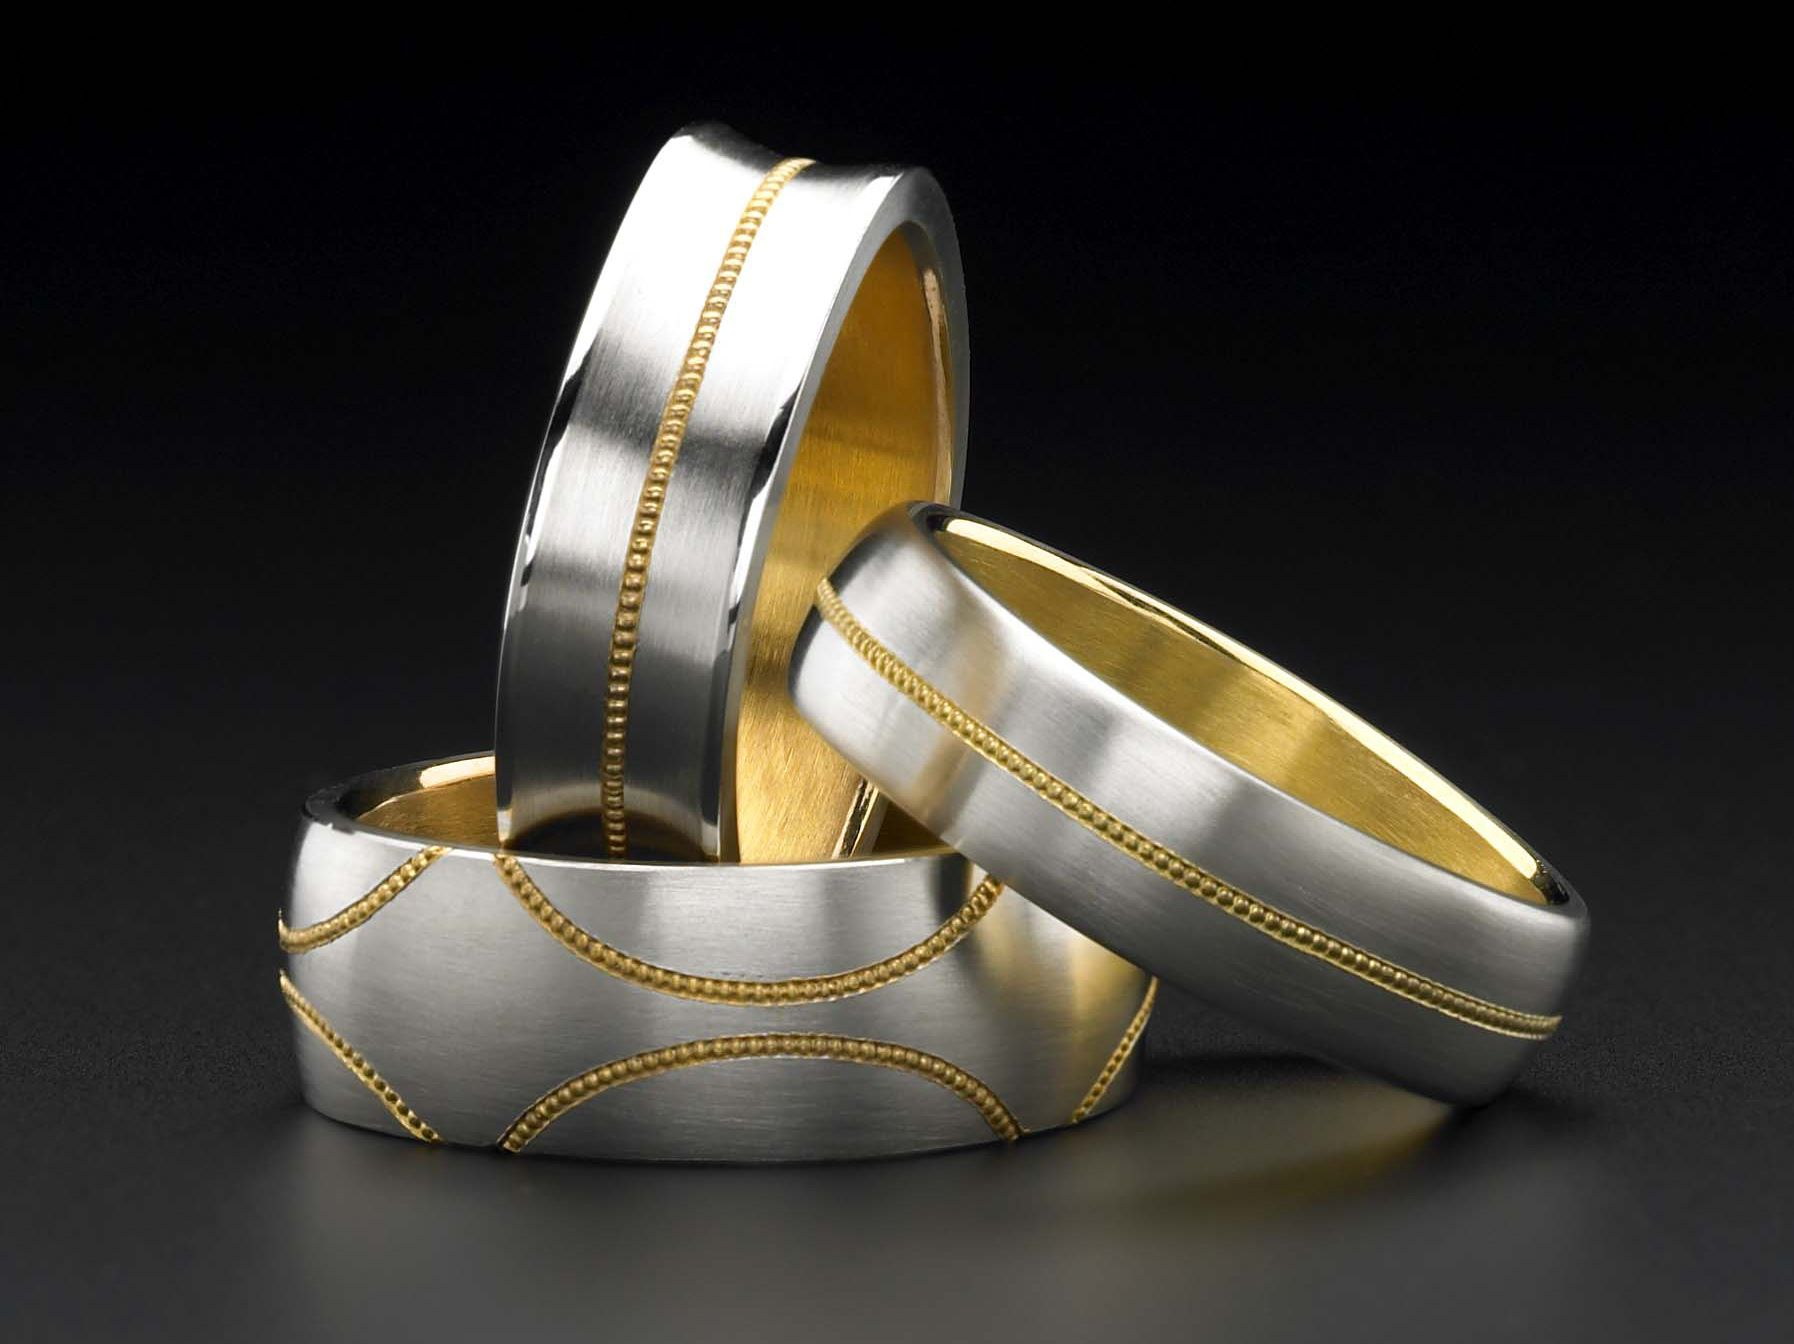 Zoltan David Gent Bands in Platinum with 24K Gold Inlay and